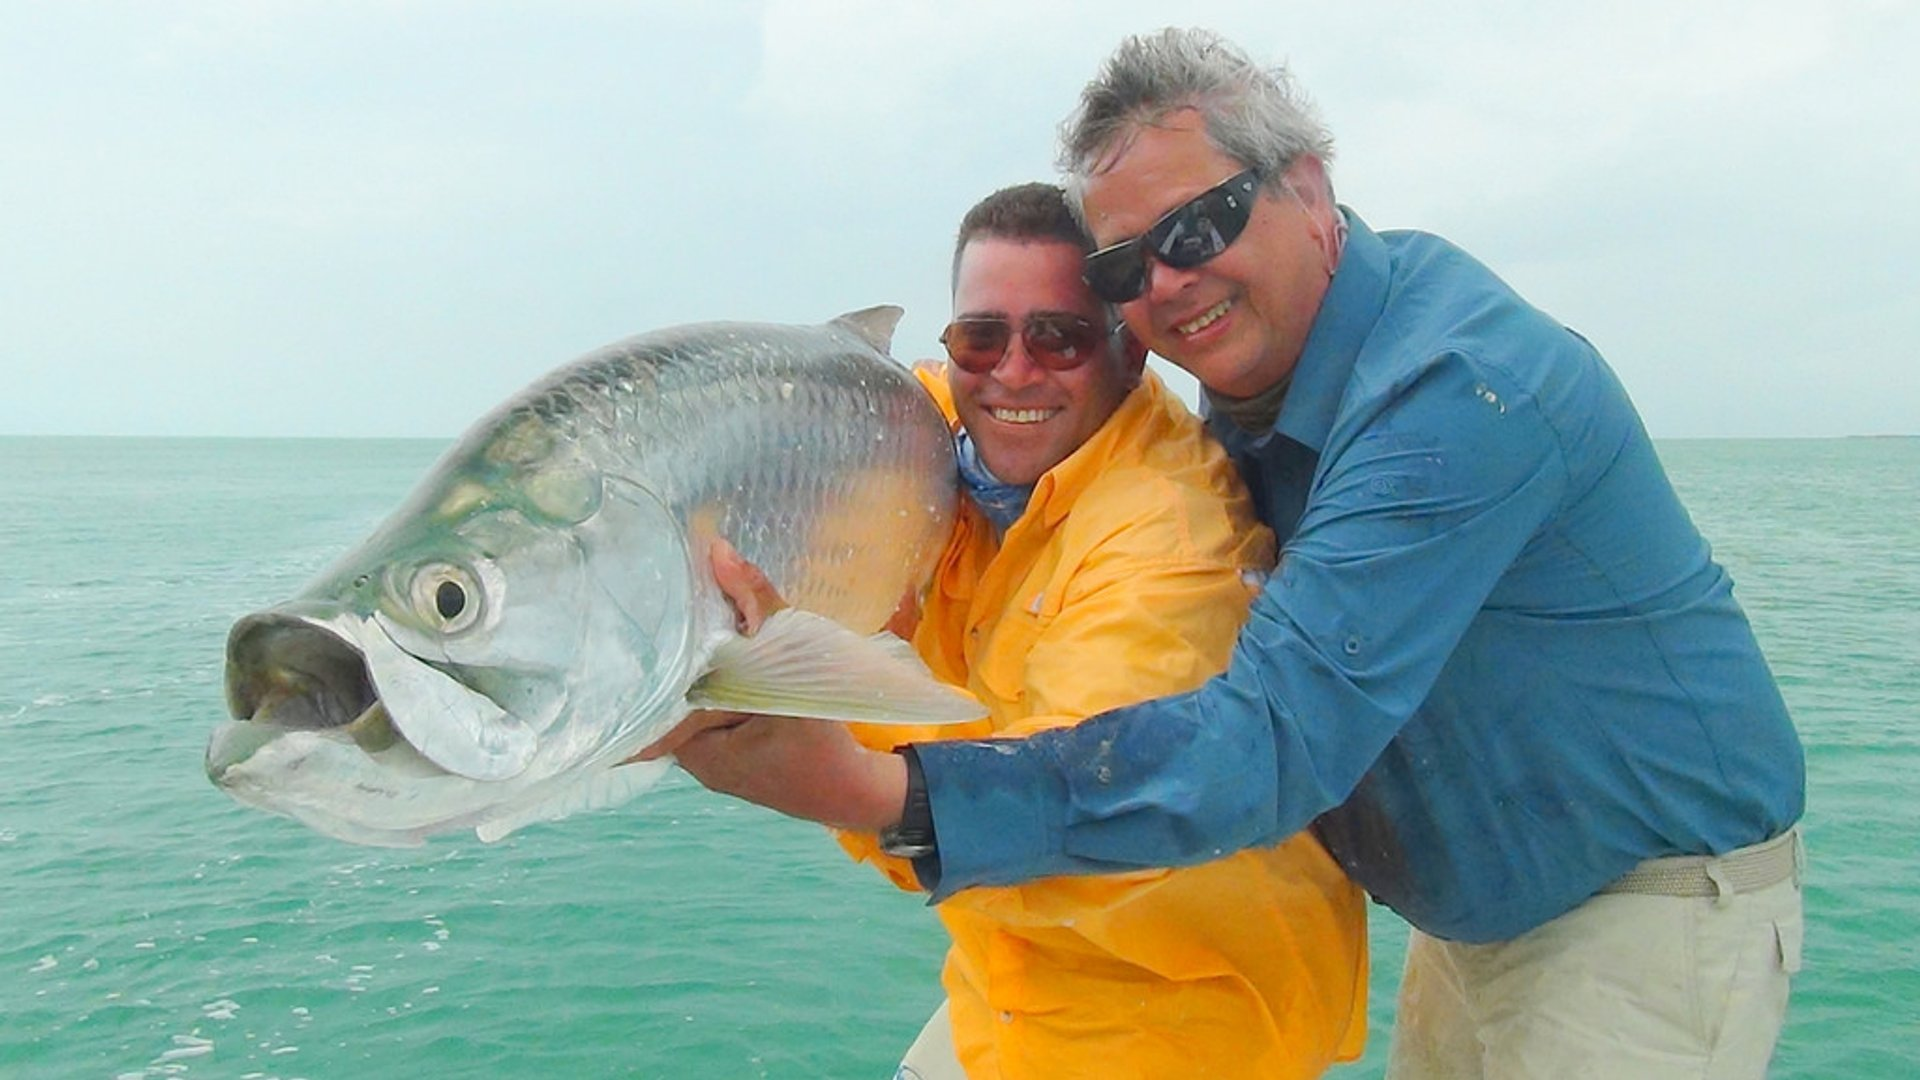 Fishing Tarpon in Cuba - Best Season 2019